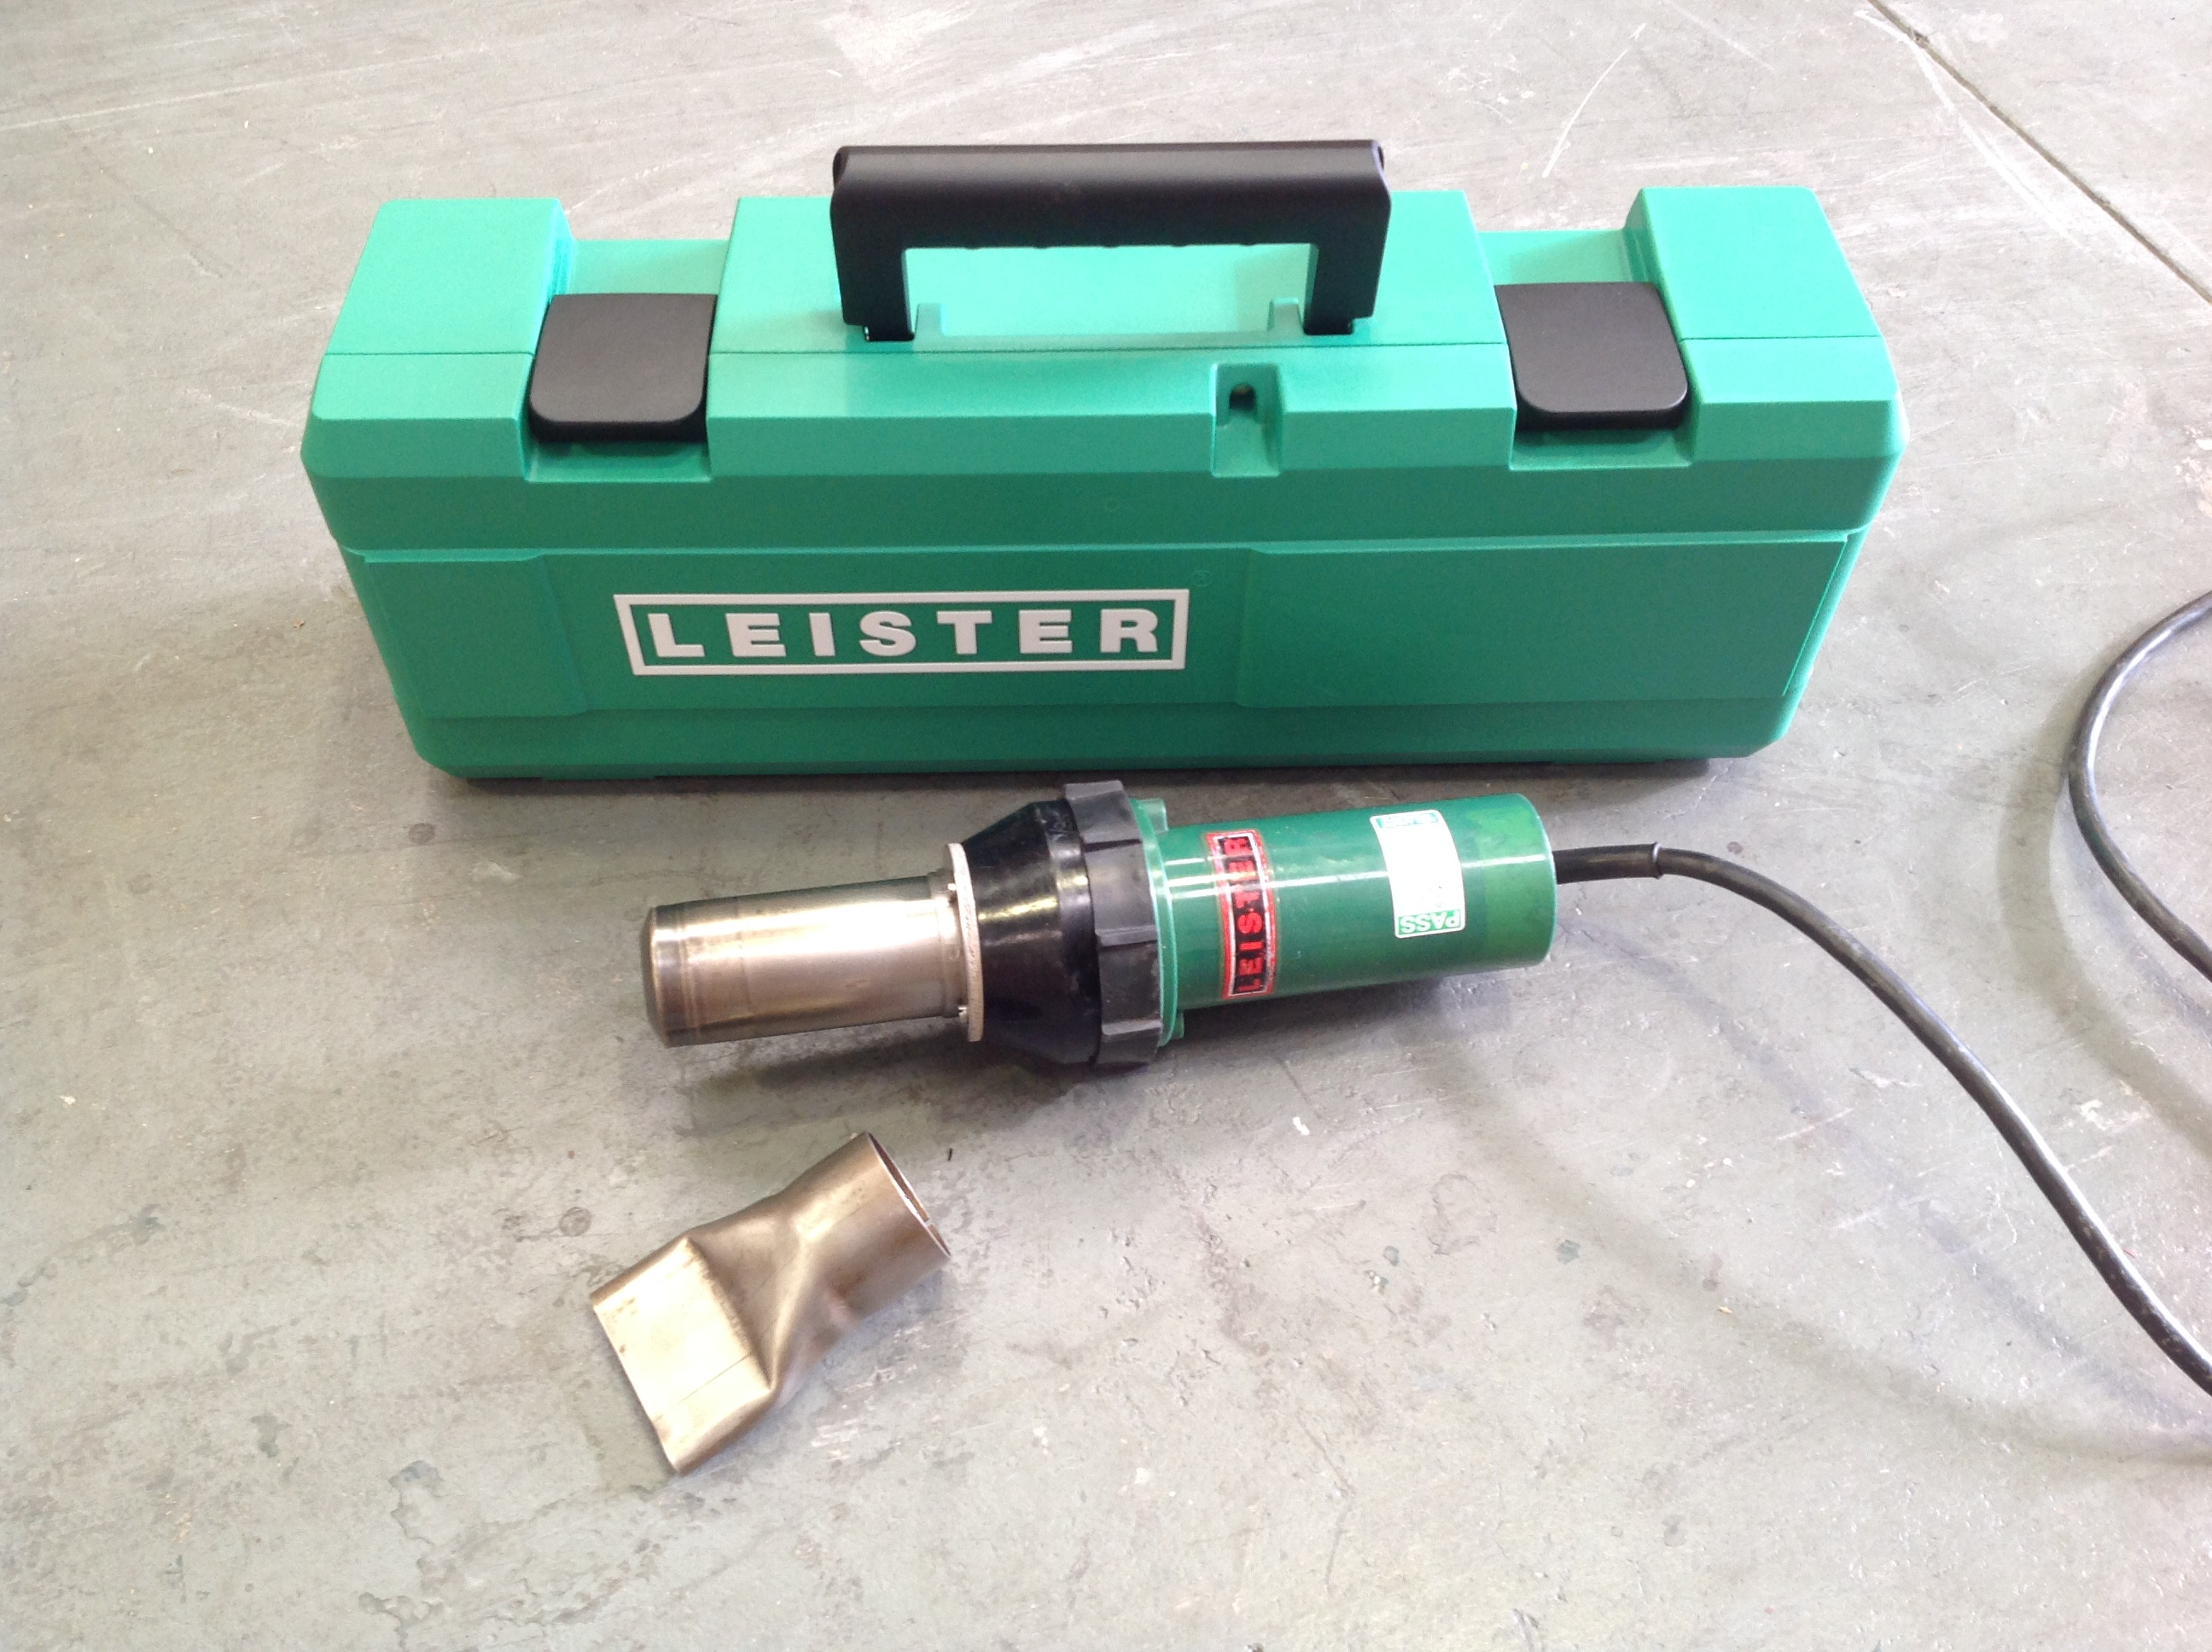 Leister Electron Hot Air Roofing Heat Gun Welder with Nozzle and New Case - 240V - 240V (USED151) - SOLD